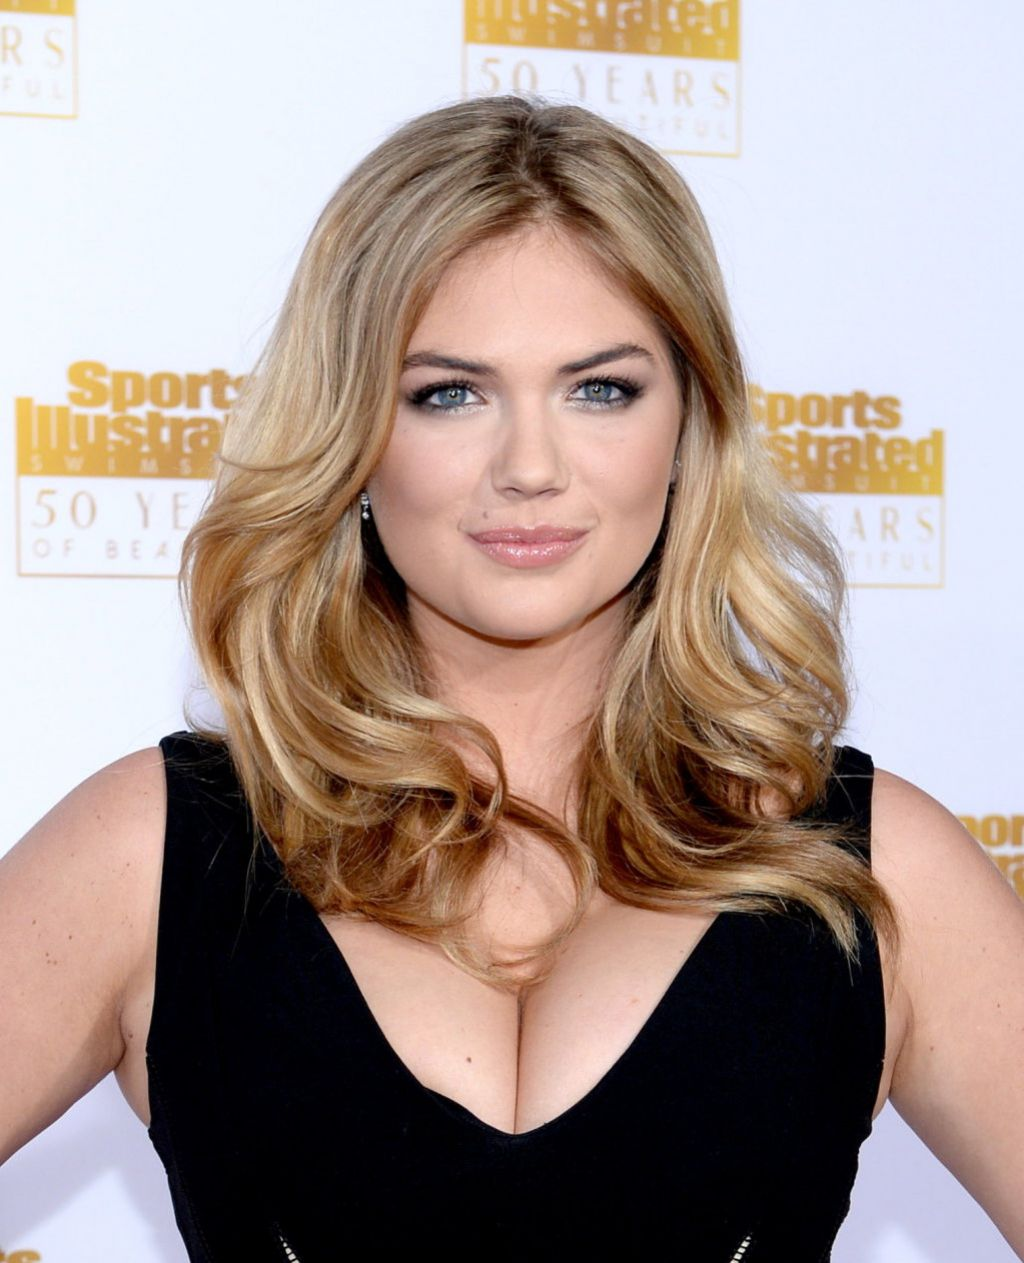 Kate Upton - 50th Anniversary of the SI Swimsuit Issue Celebration in Hollywood, Jan. 2014